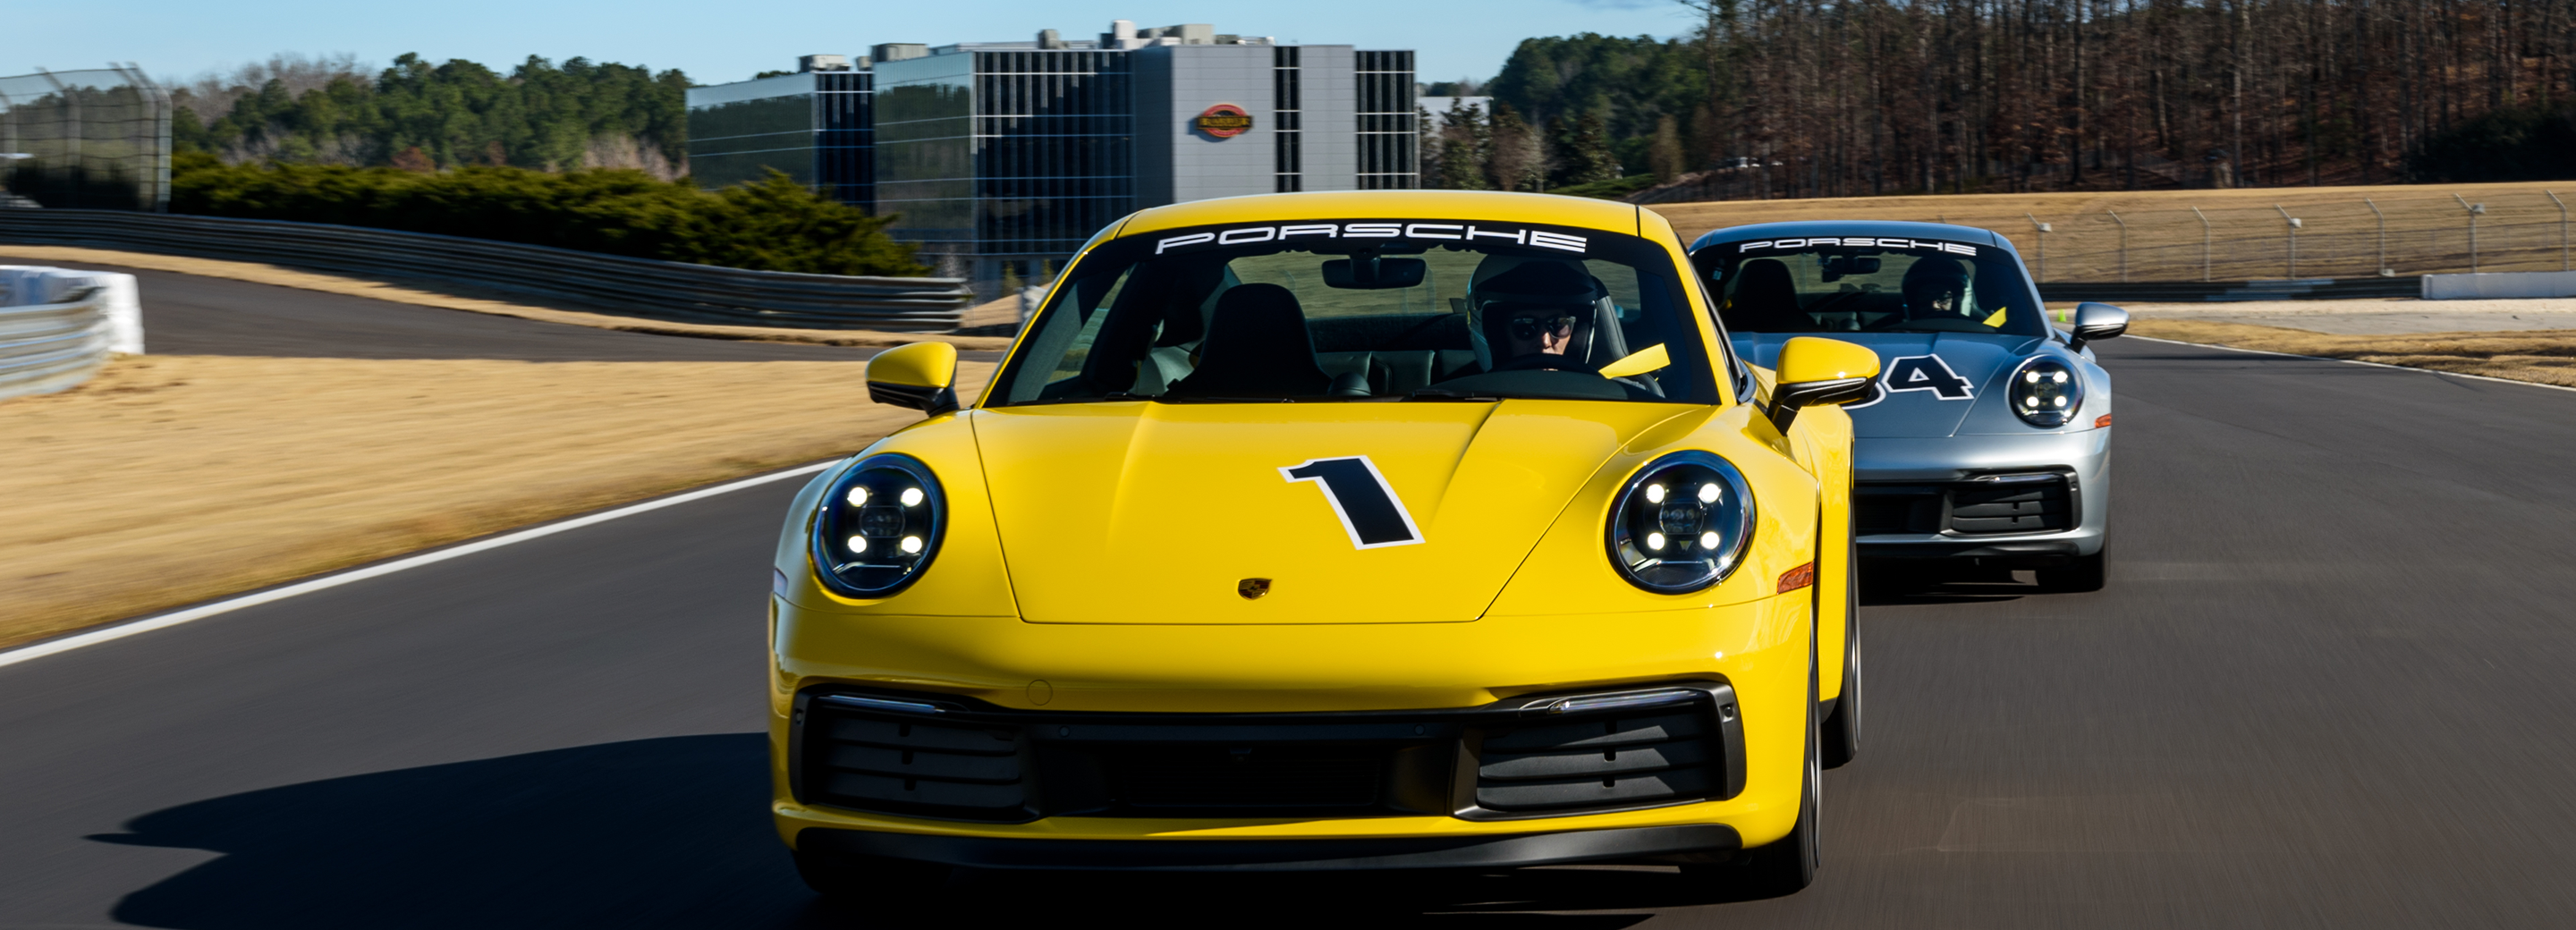 Masters RS Header Image